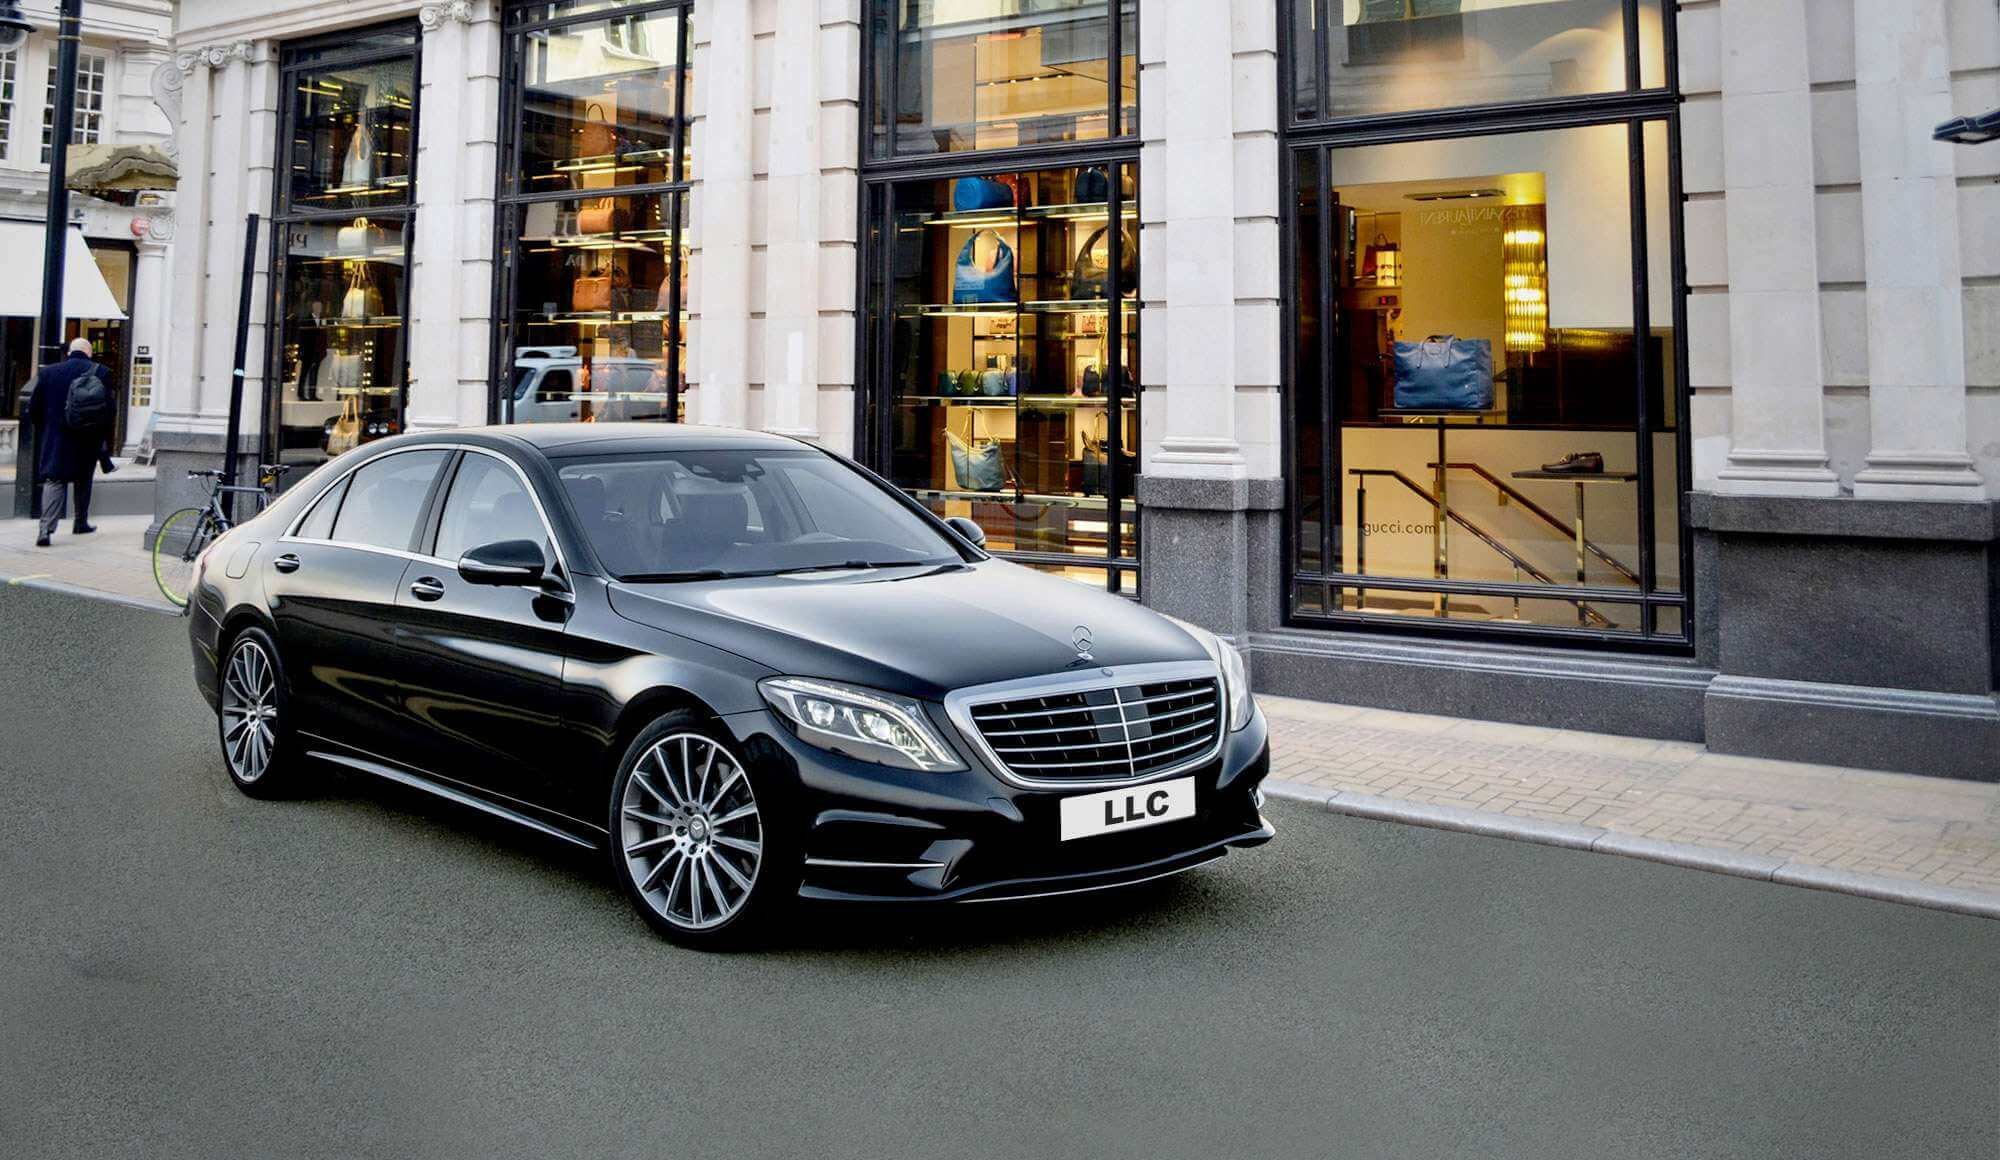 Mercedes S Class Hire With Chauffeur In London Llc